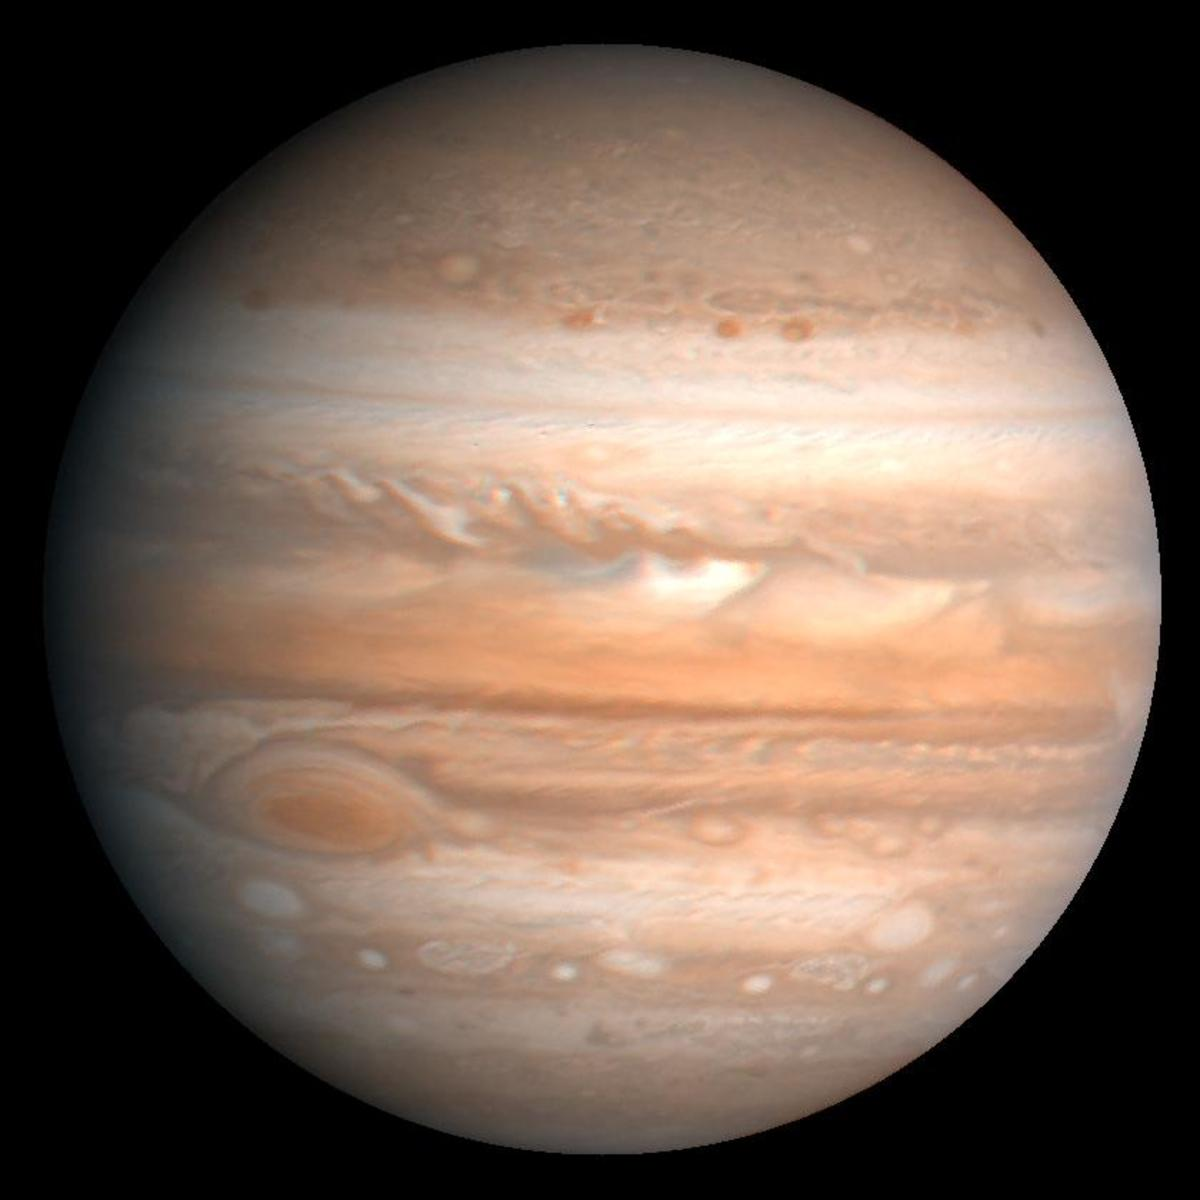 The gas giant Jupiter is made up of mostly hydrogen and helium.